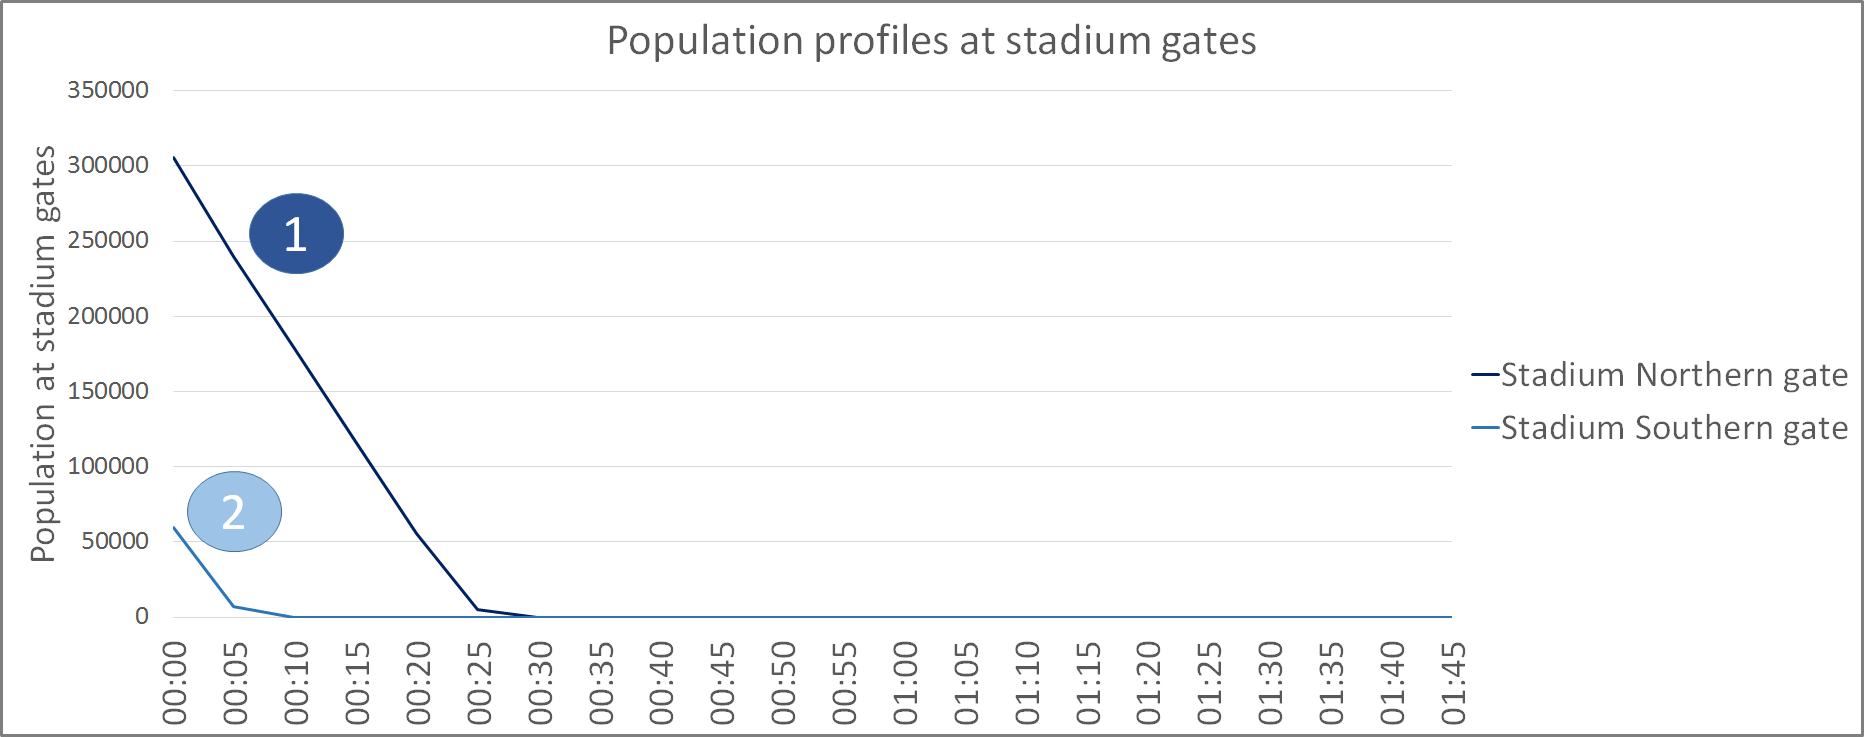 Olympic Stadium Pedestrian Modelling: Population profiles at stadium gates